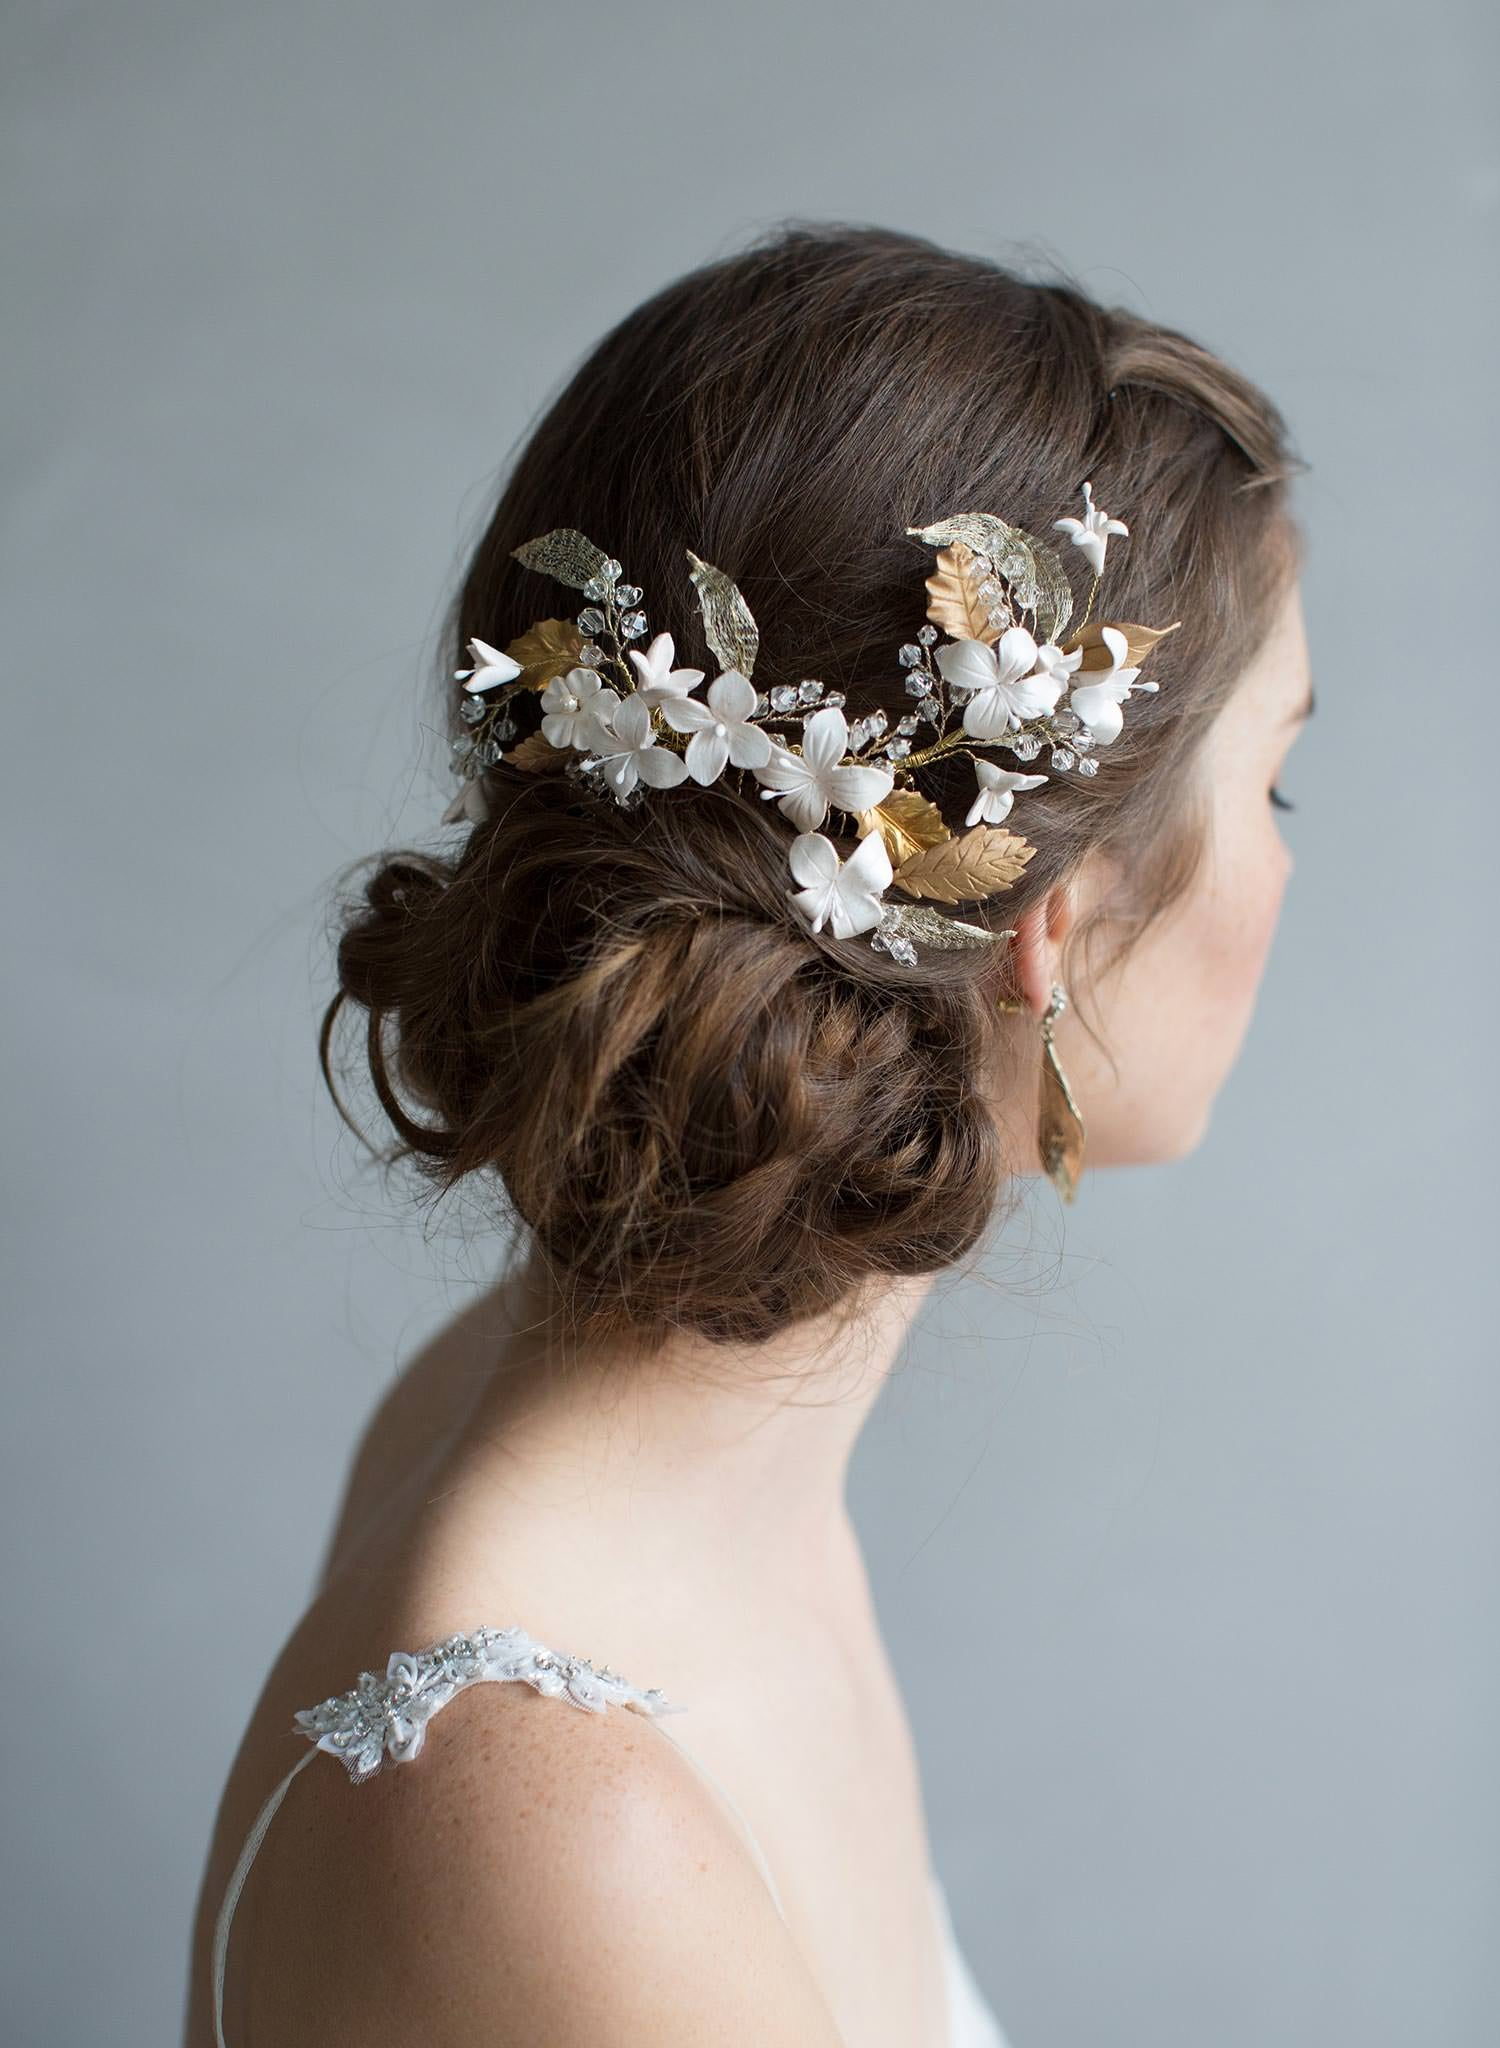 Glinting leaves and blushing flowers headpiece - Style #7017